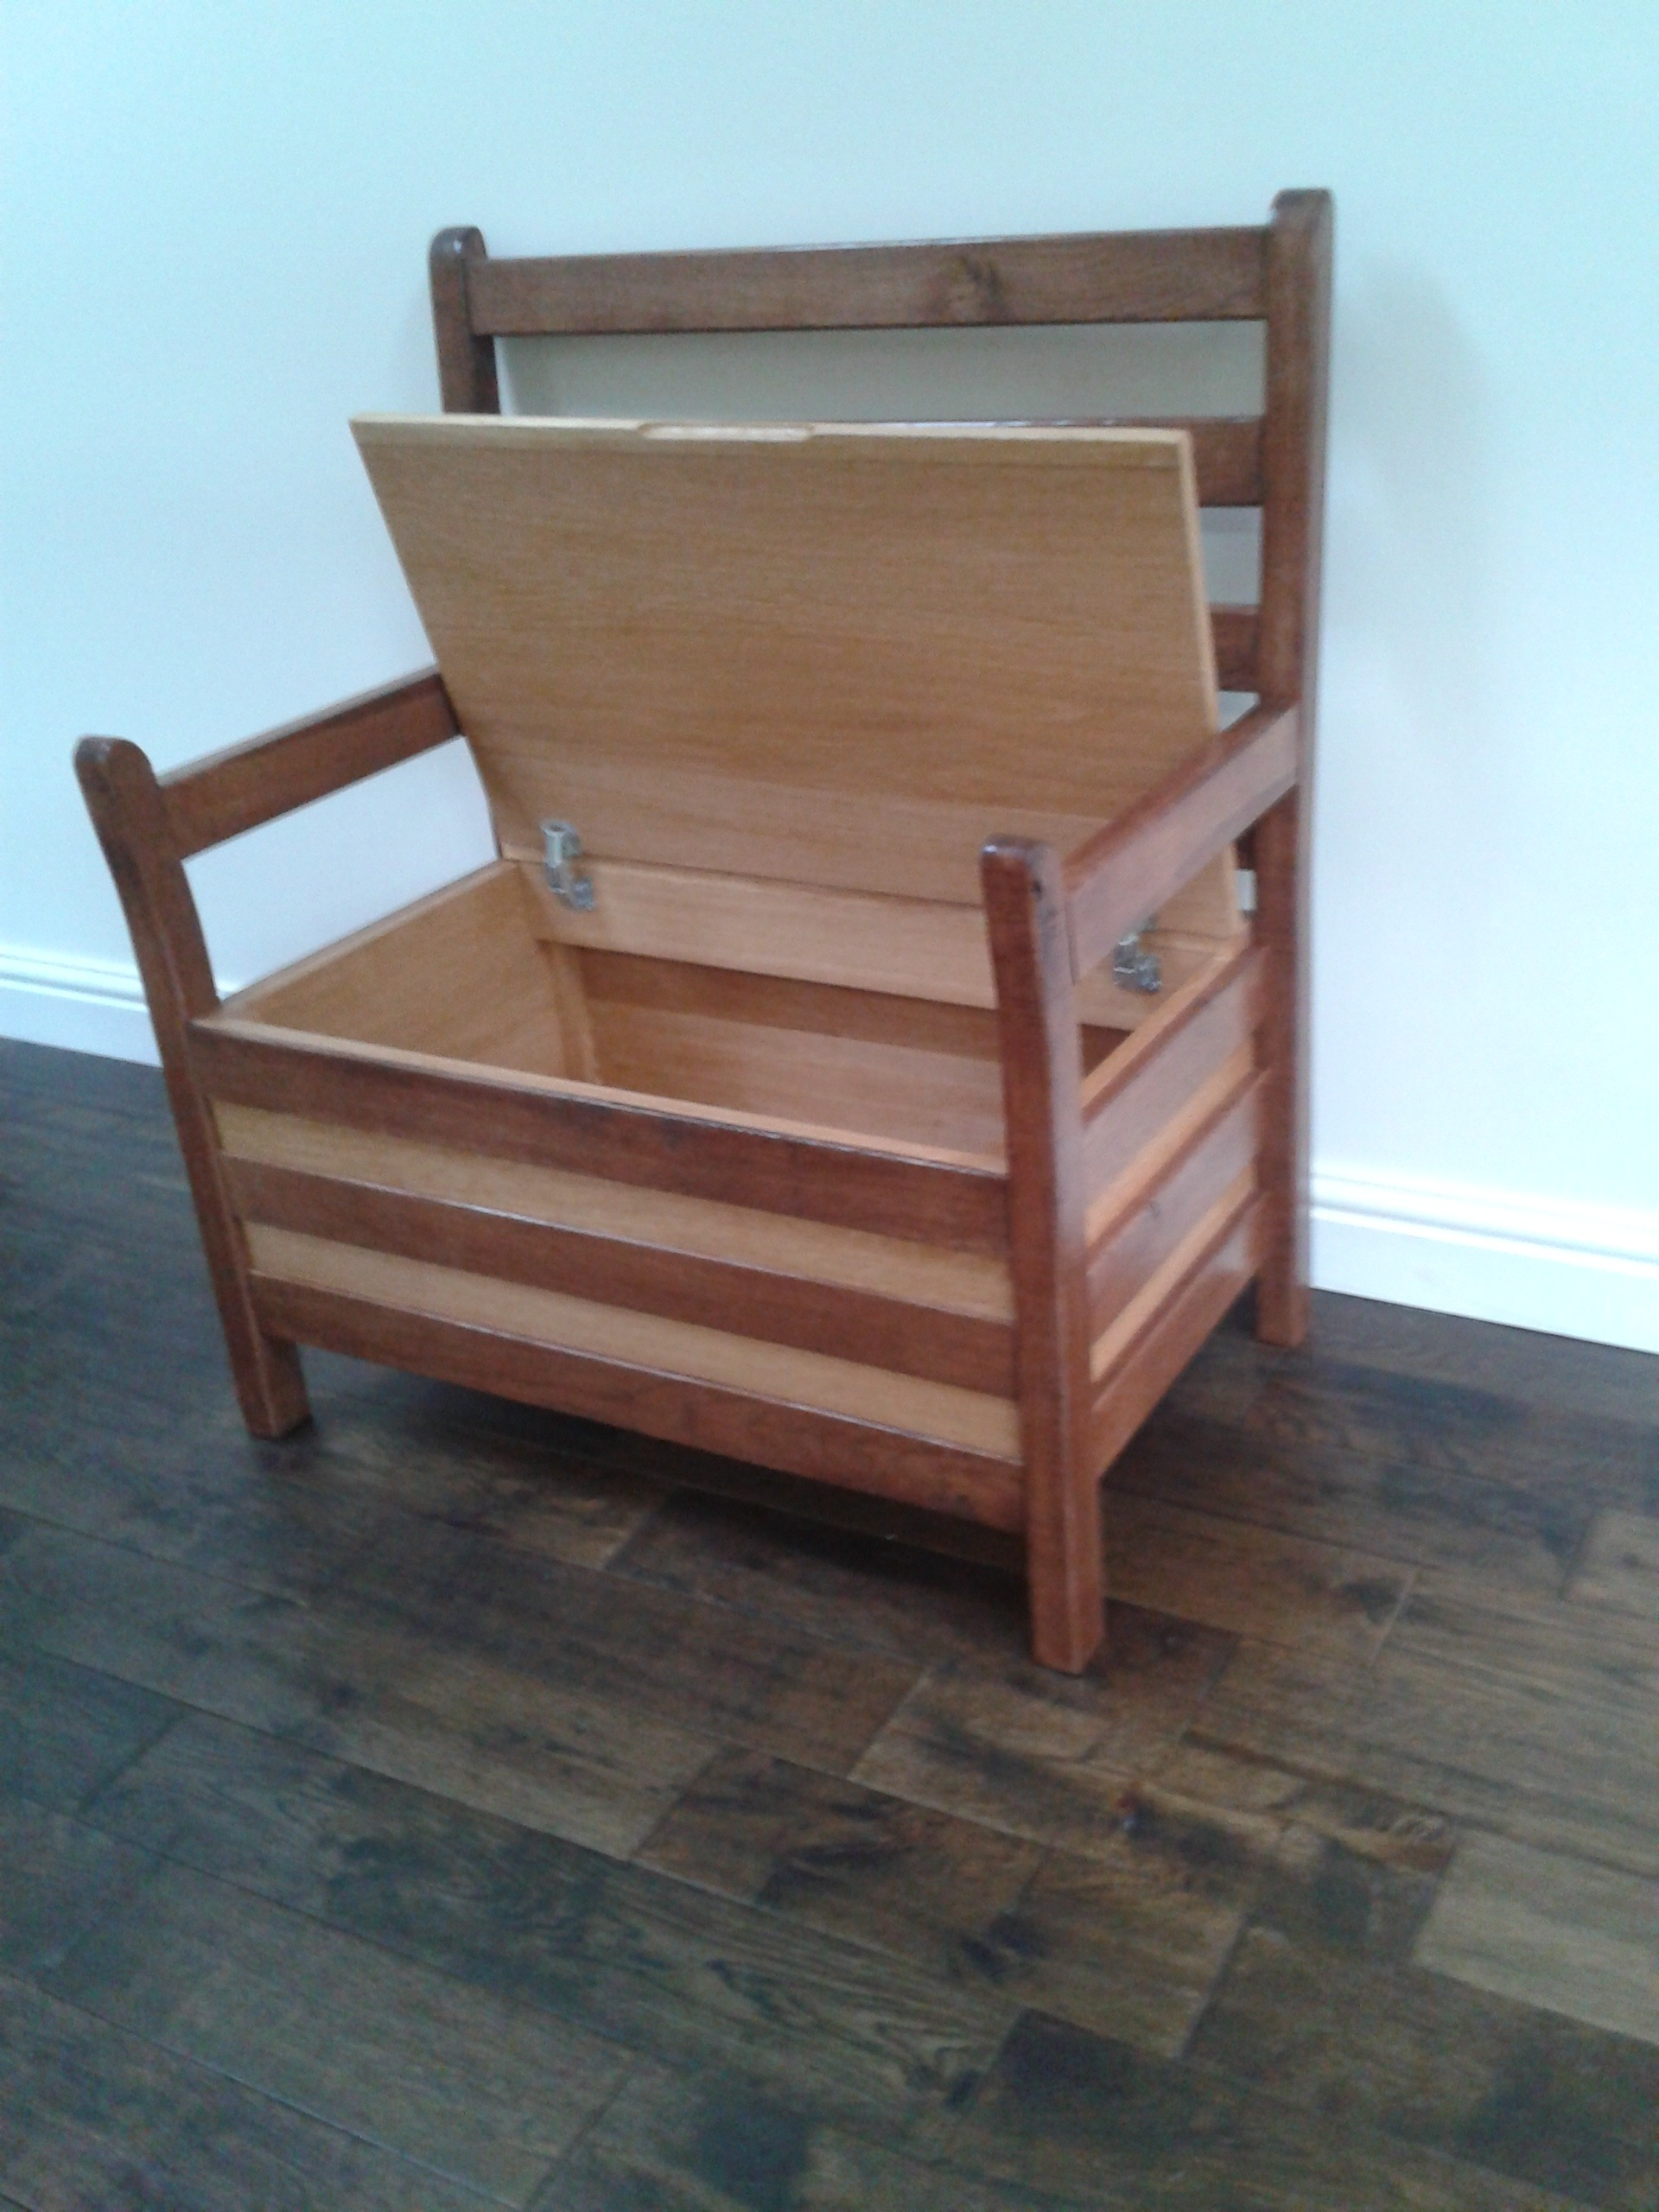 Chairs For Sitting Amp Chairs For Storage James Archer